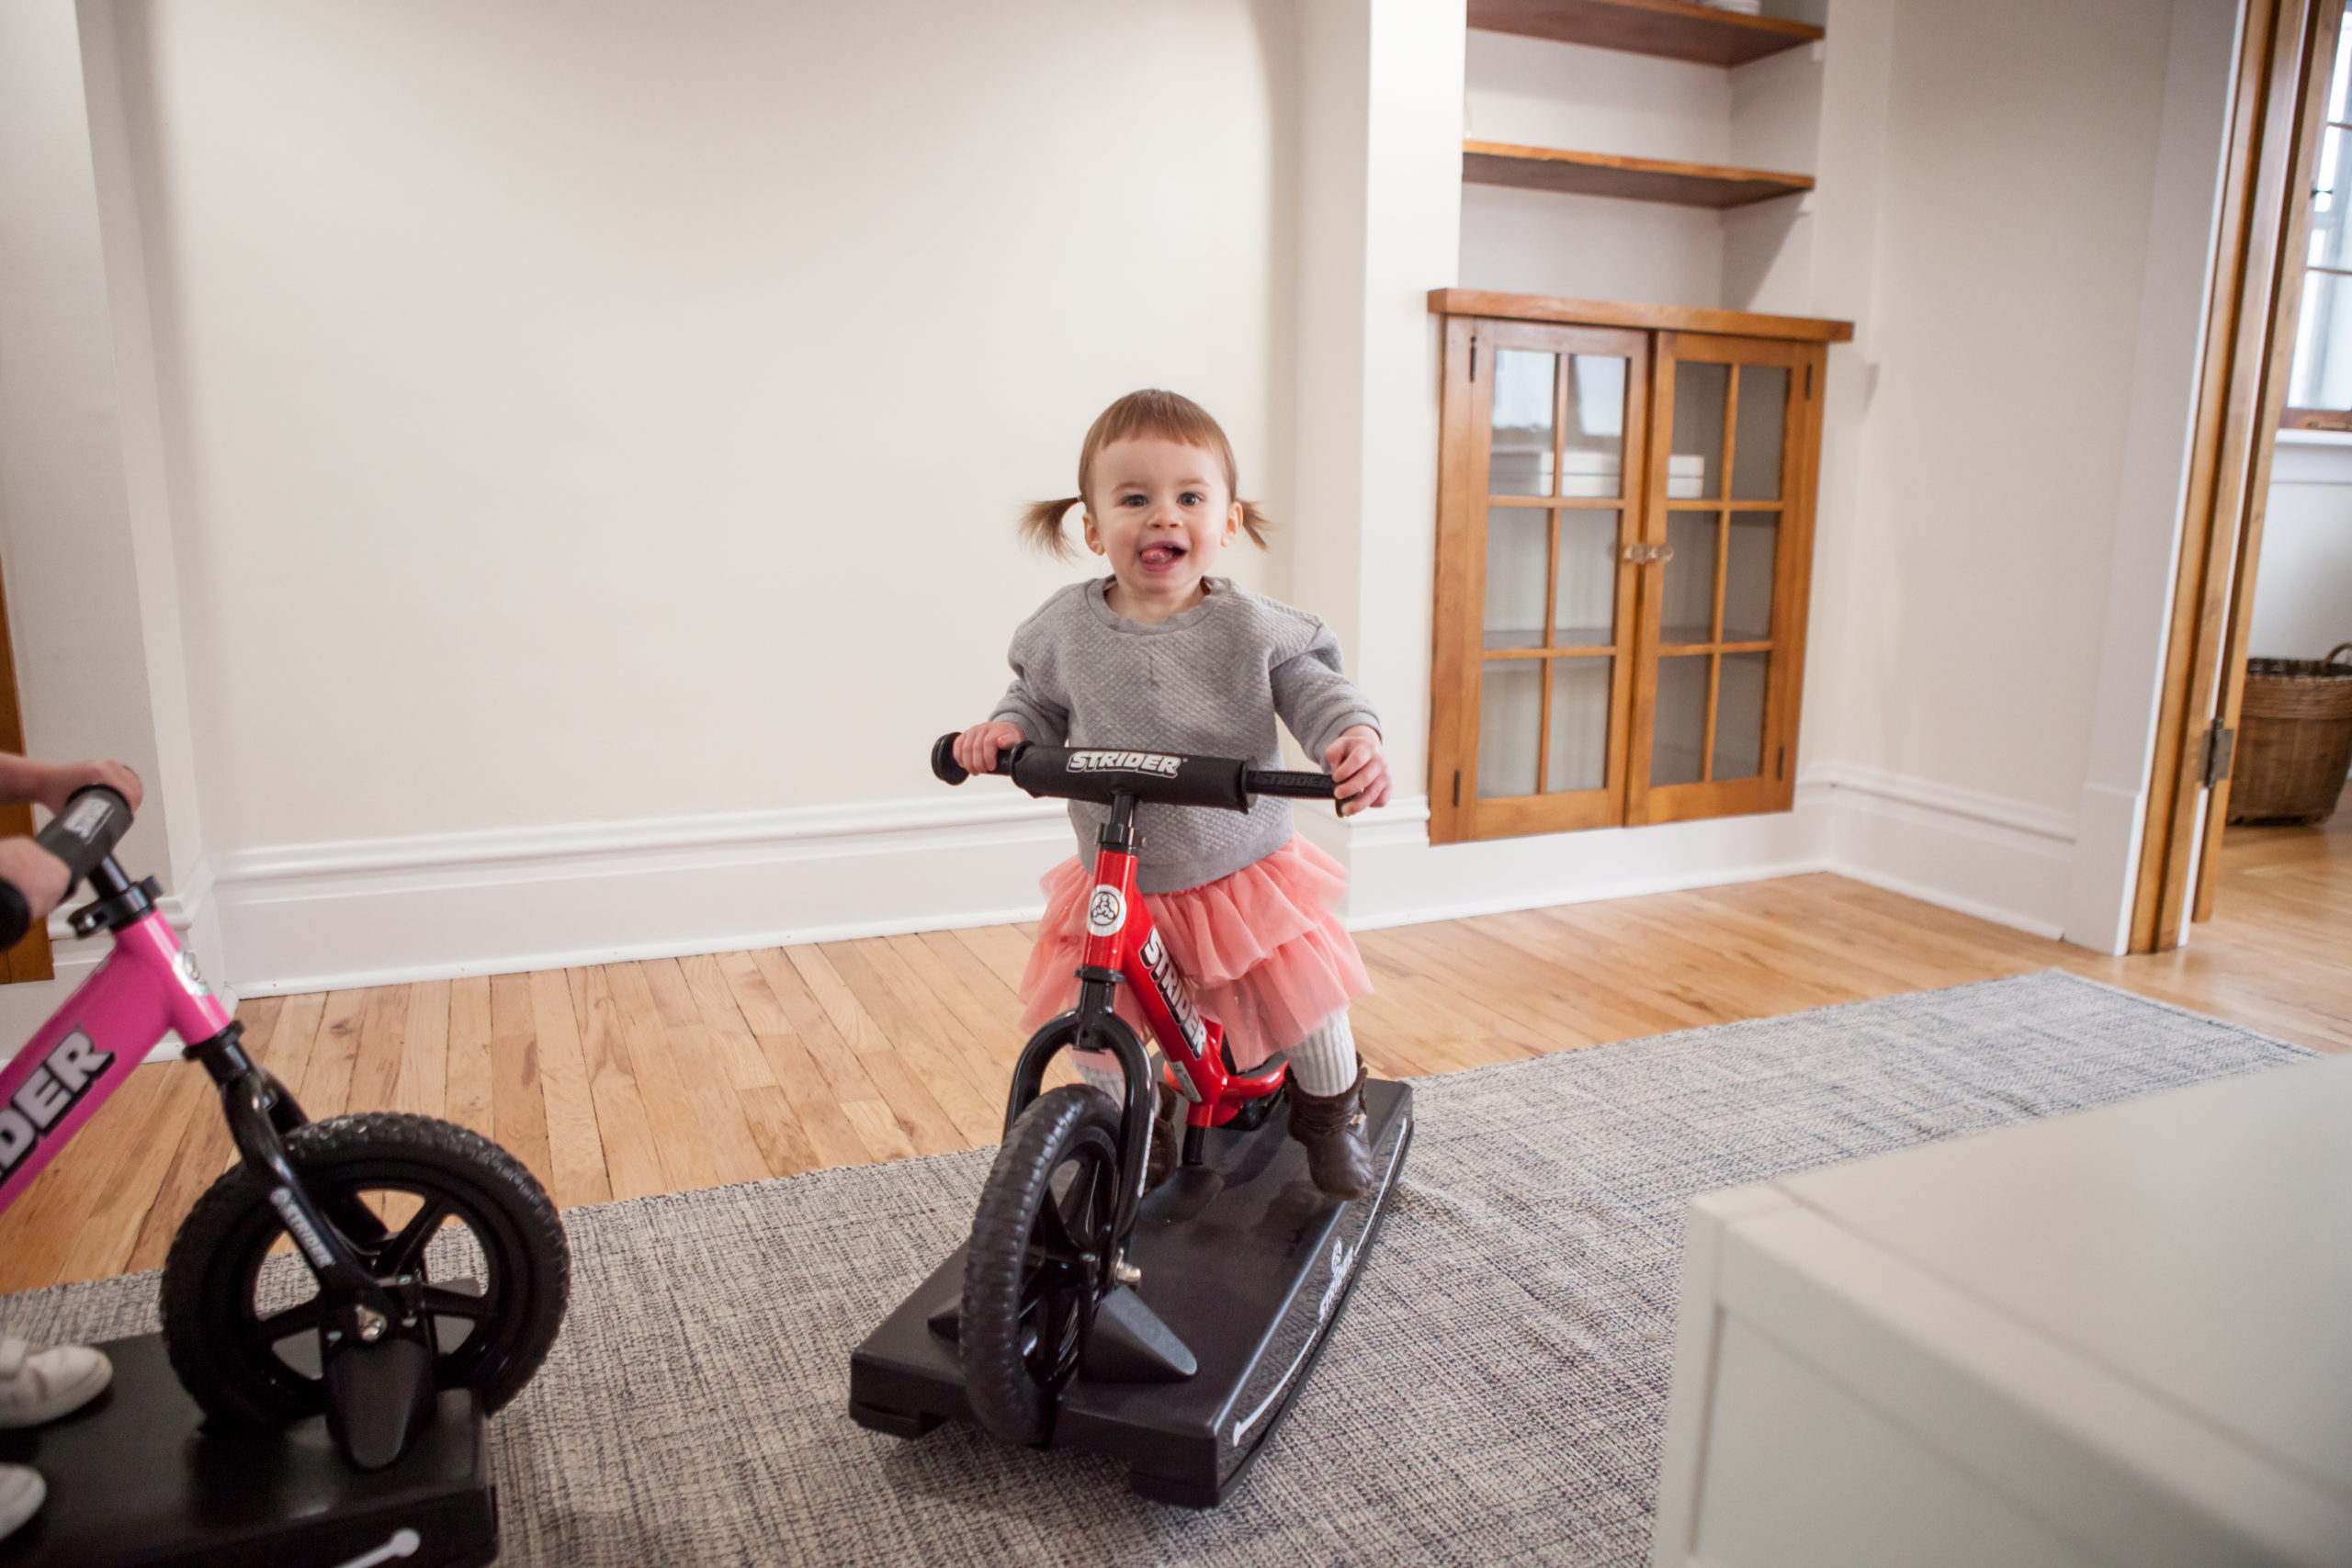 Little girl with tongue out rocking on red 12 Sport 2-in-1 Rocking Bike